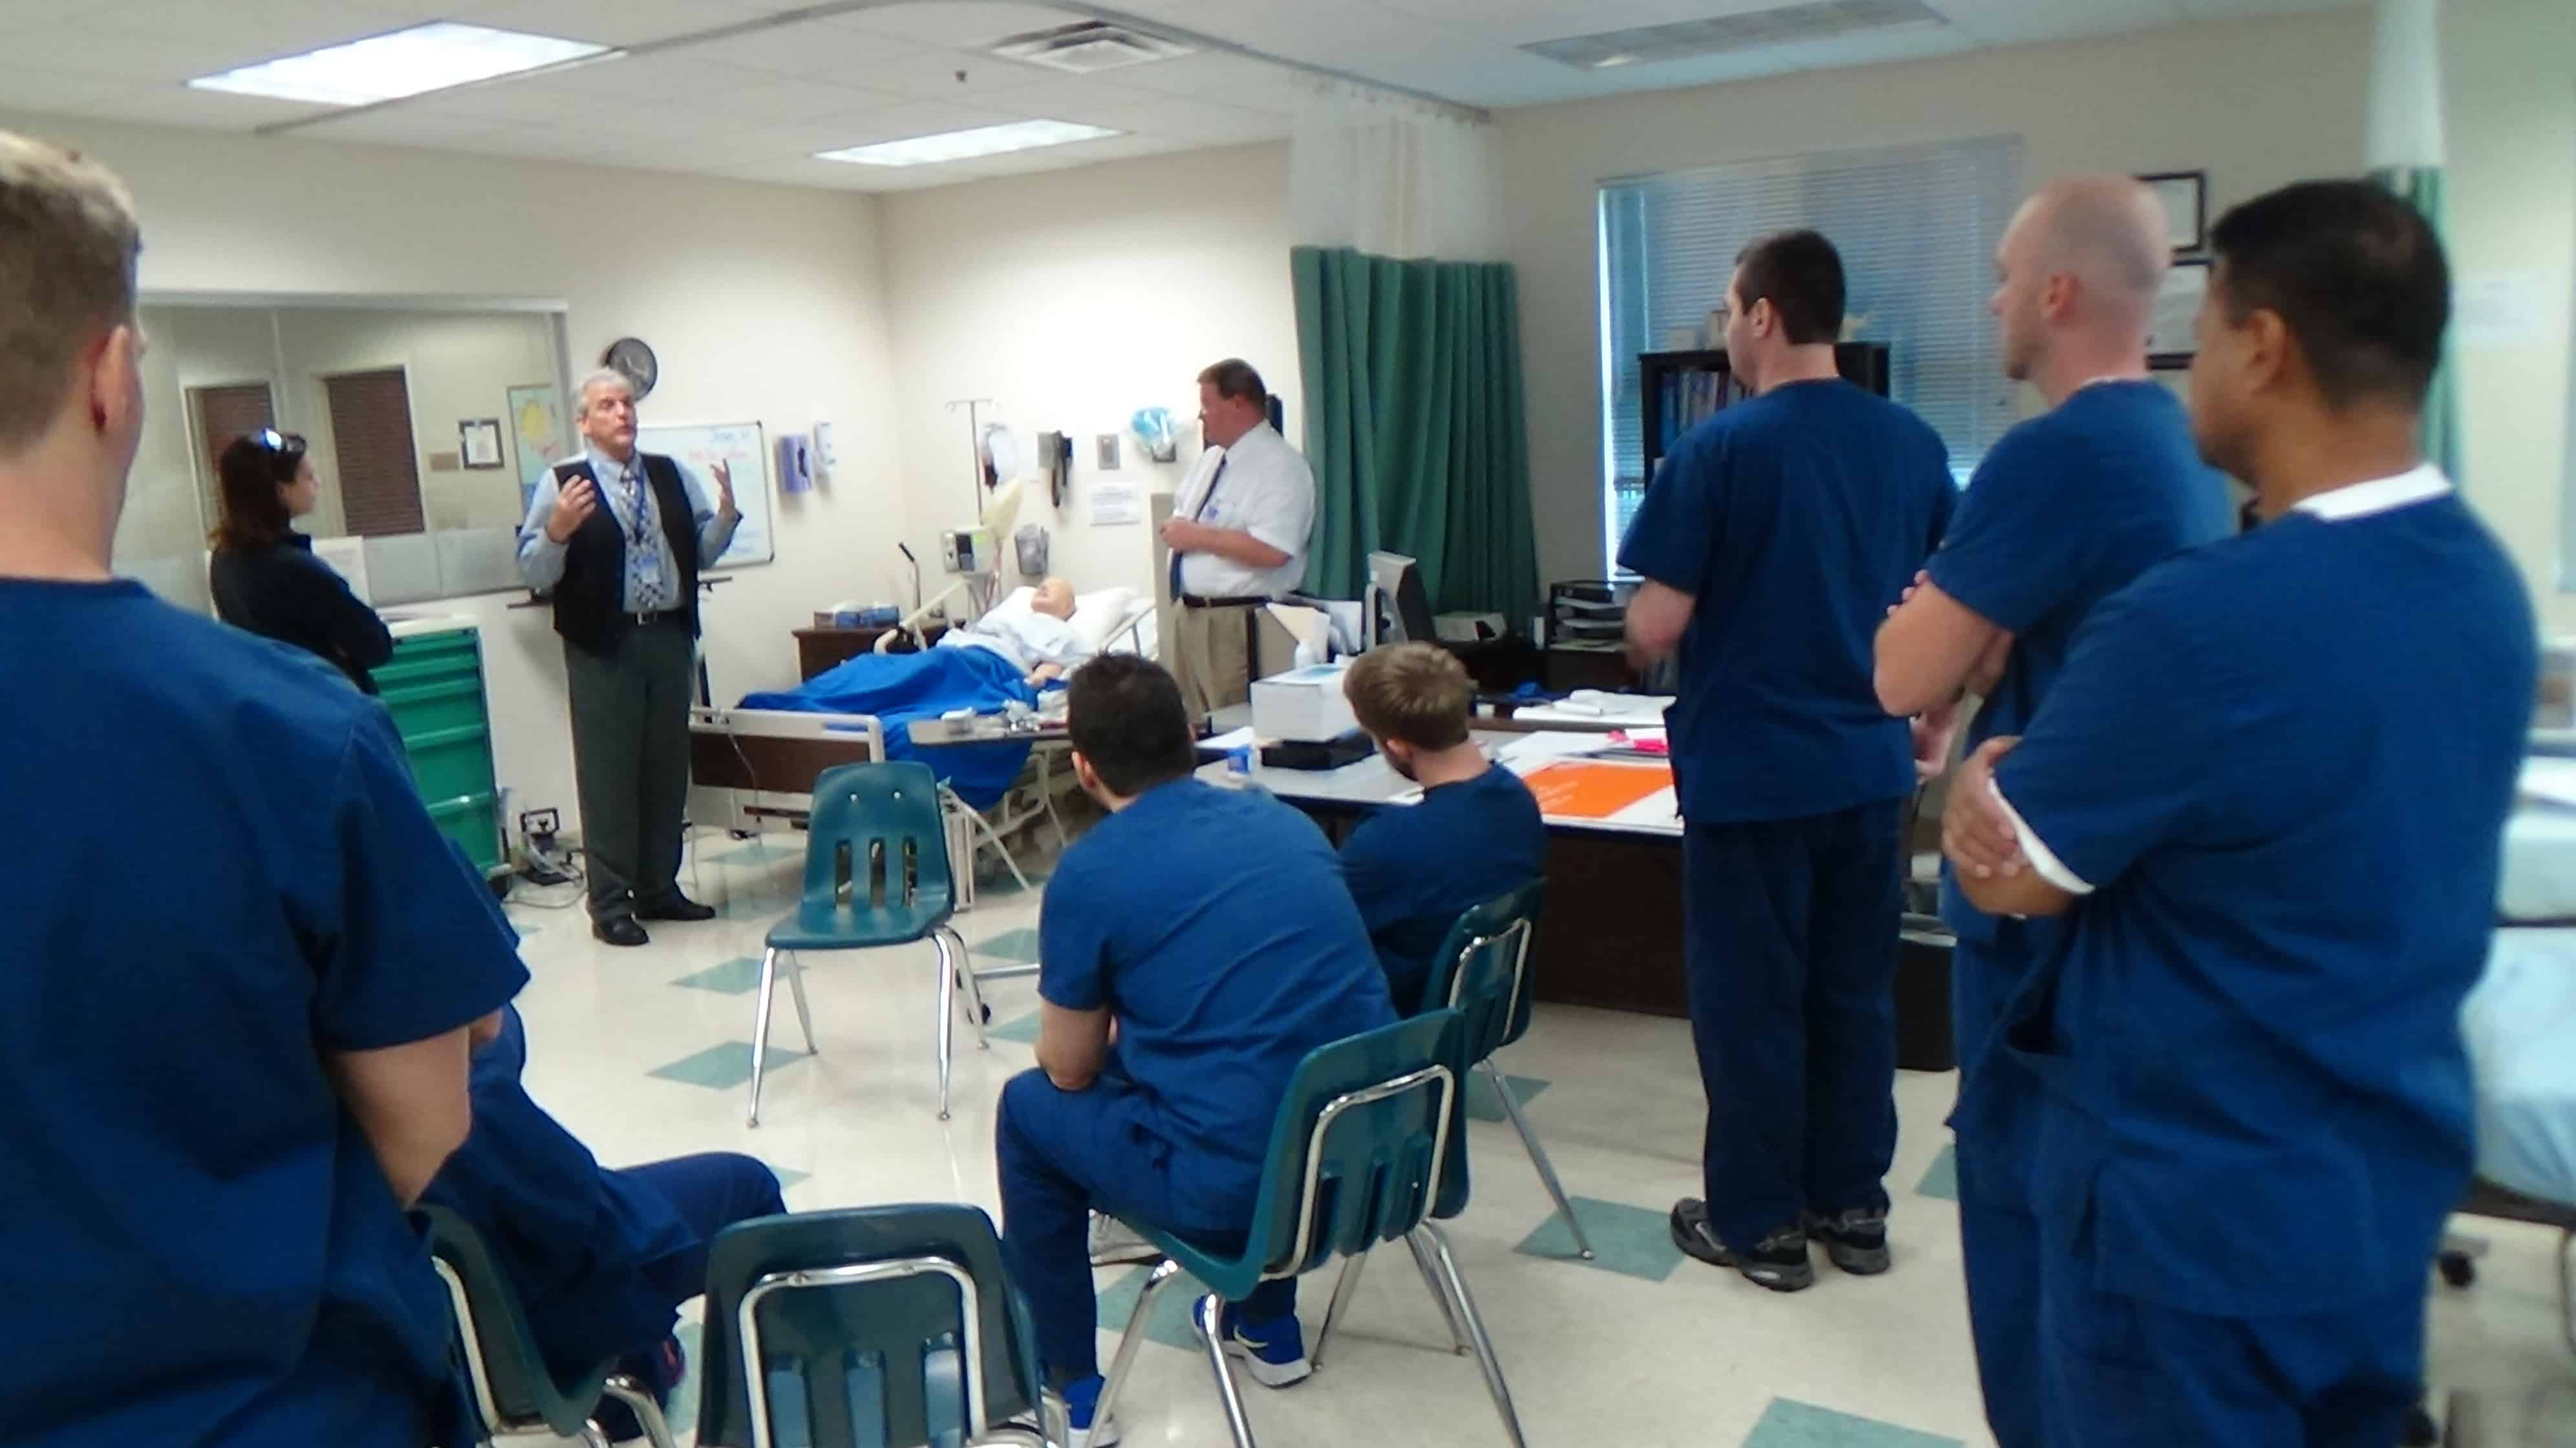 Physical Therapy Assistant Students at the Sarasota Campus Spend Time in Sim Lab